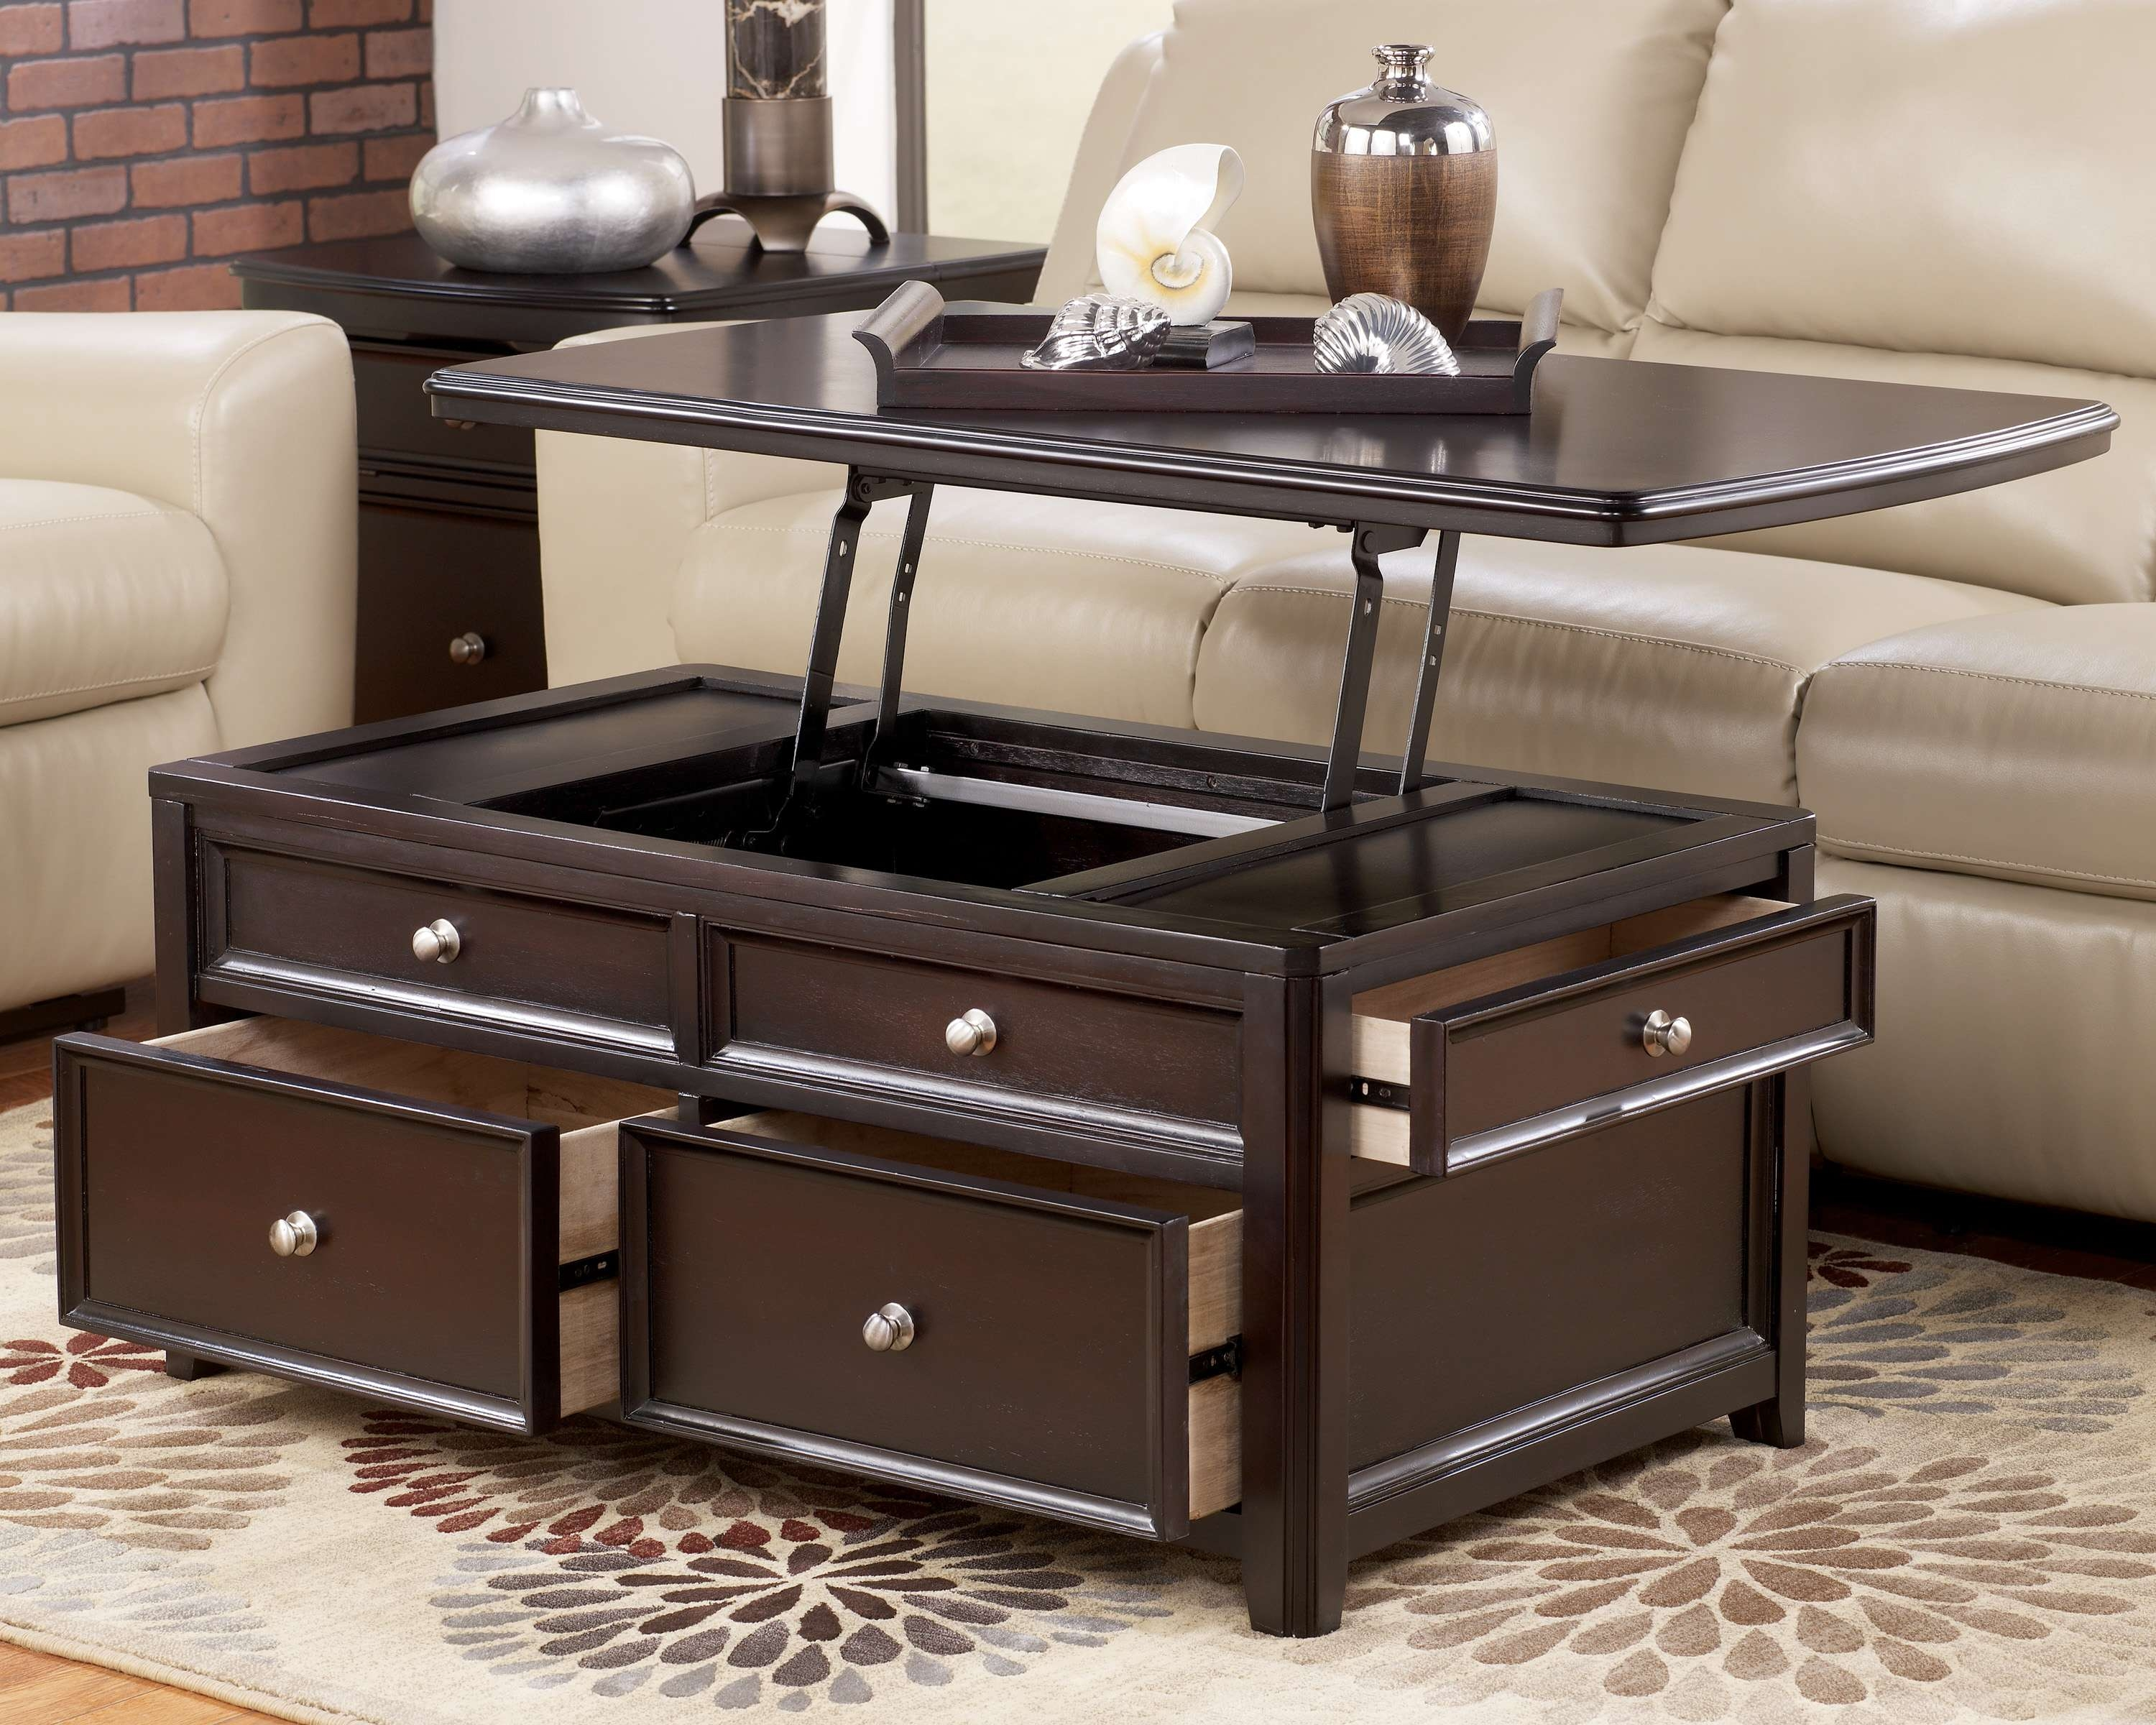 Well Liked Coffee Table With Raised Top Inside Coffee Table With Lift Top Ikea – Unac (View 20 of 20)